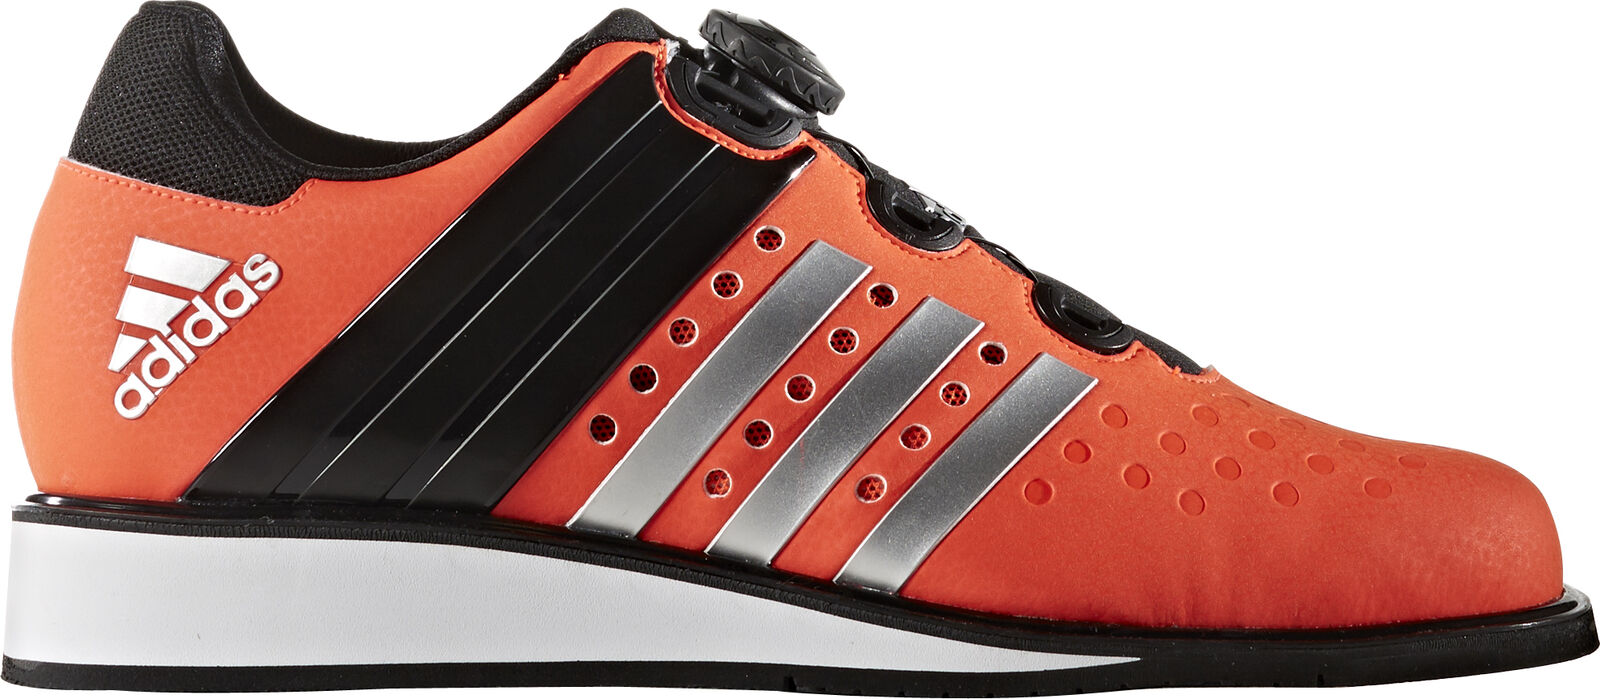 adidas Drehkraft Mens Weightlifting Shoes Red Bodybuilding Gym Lift Trainers